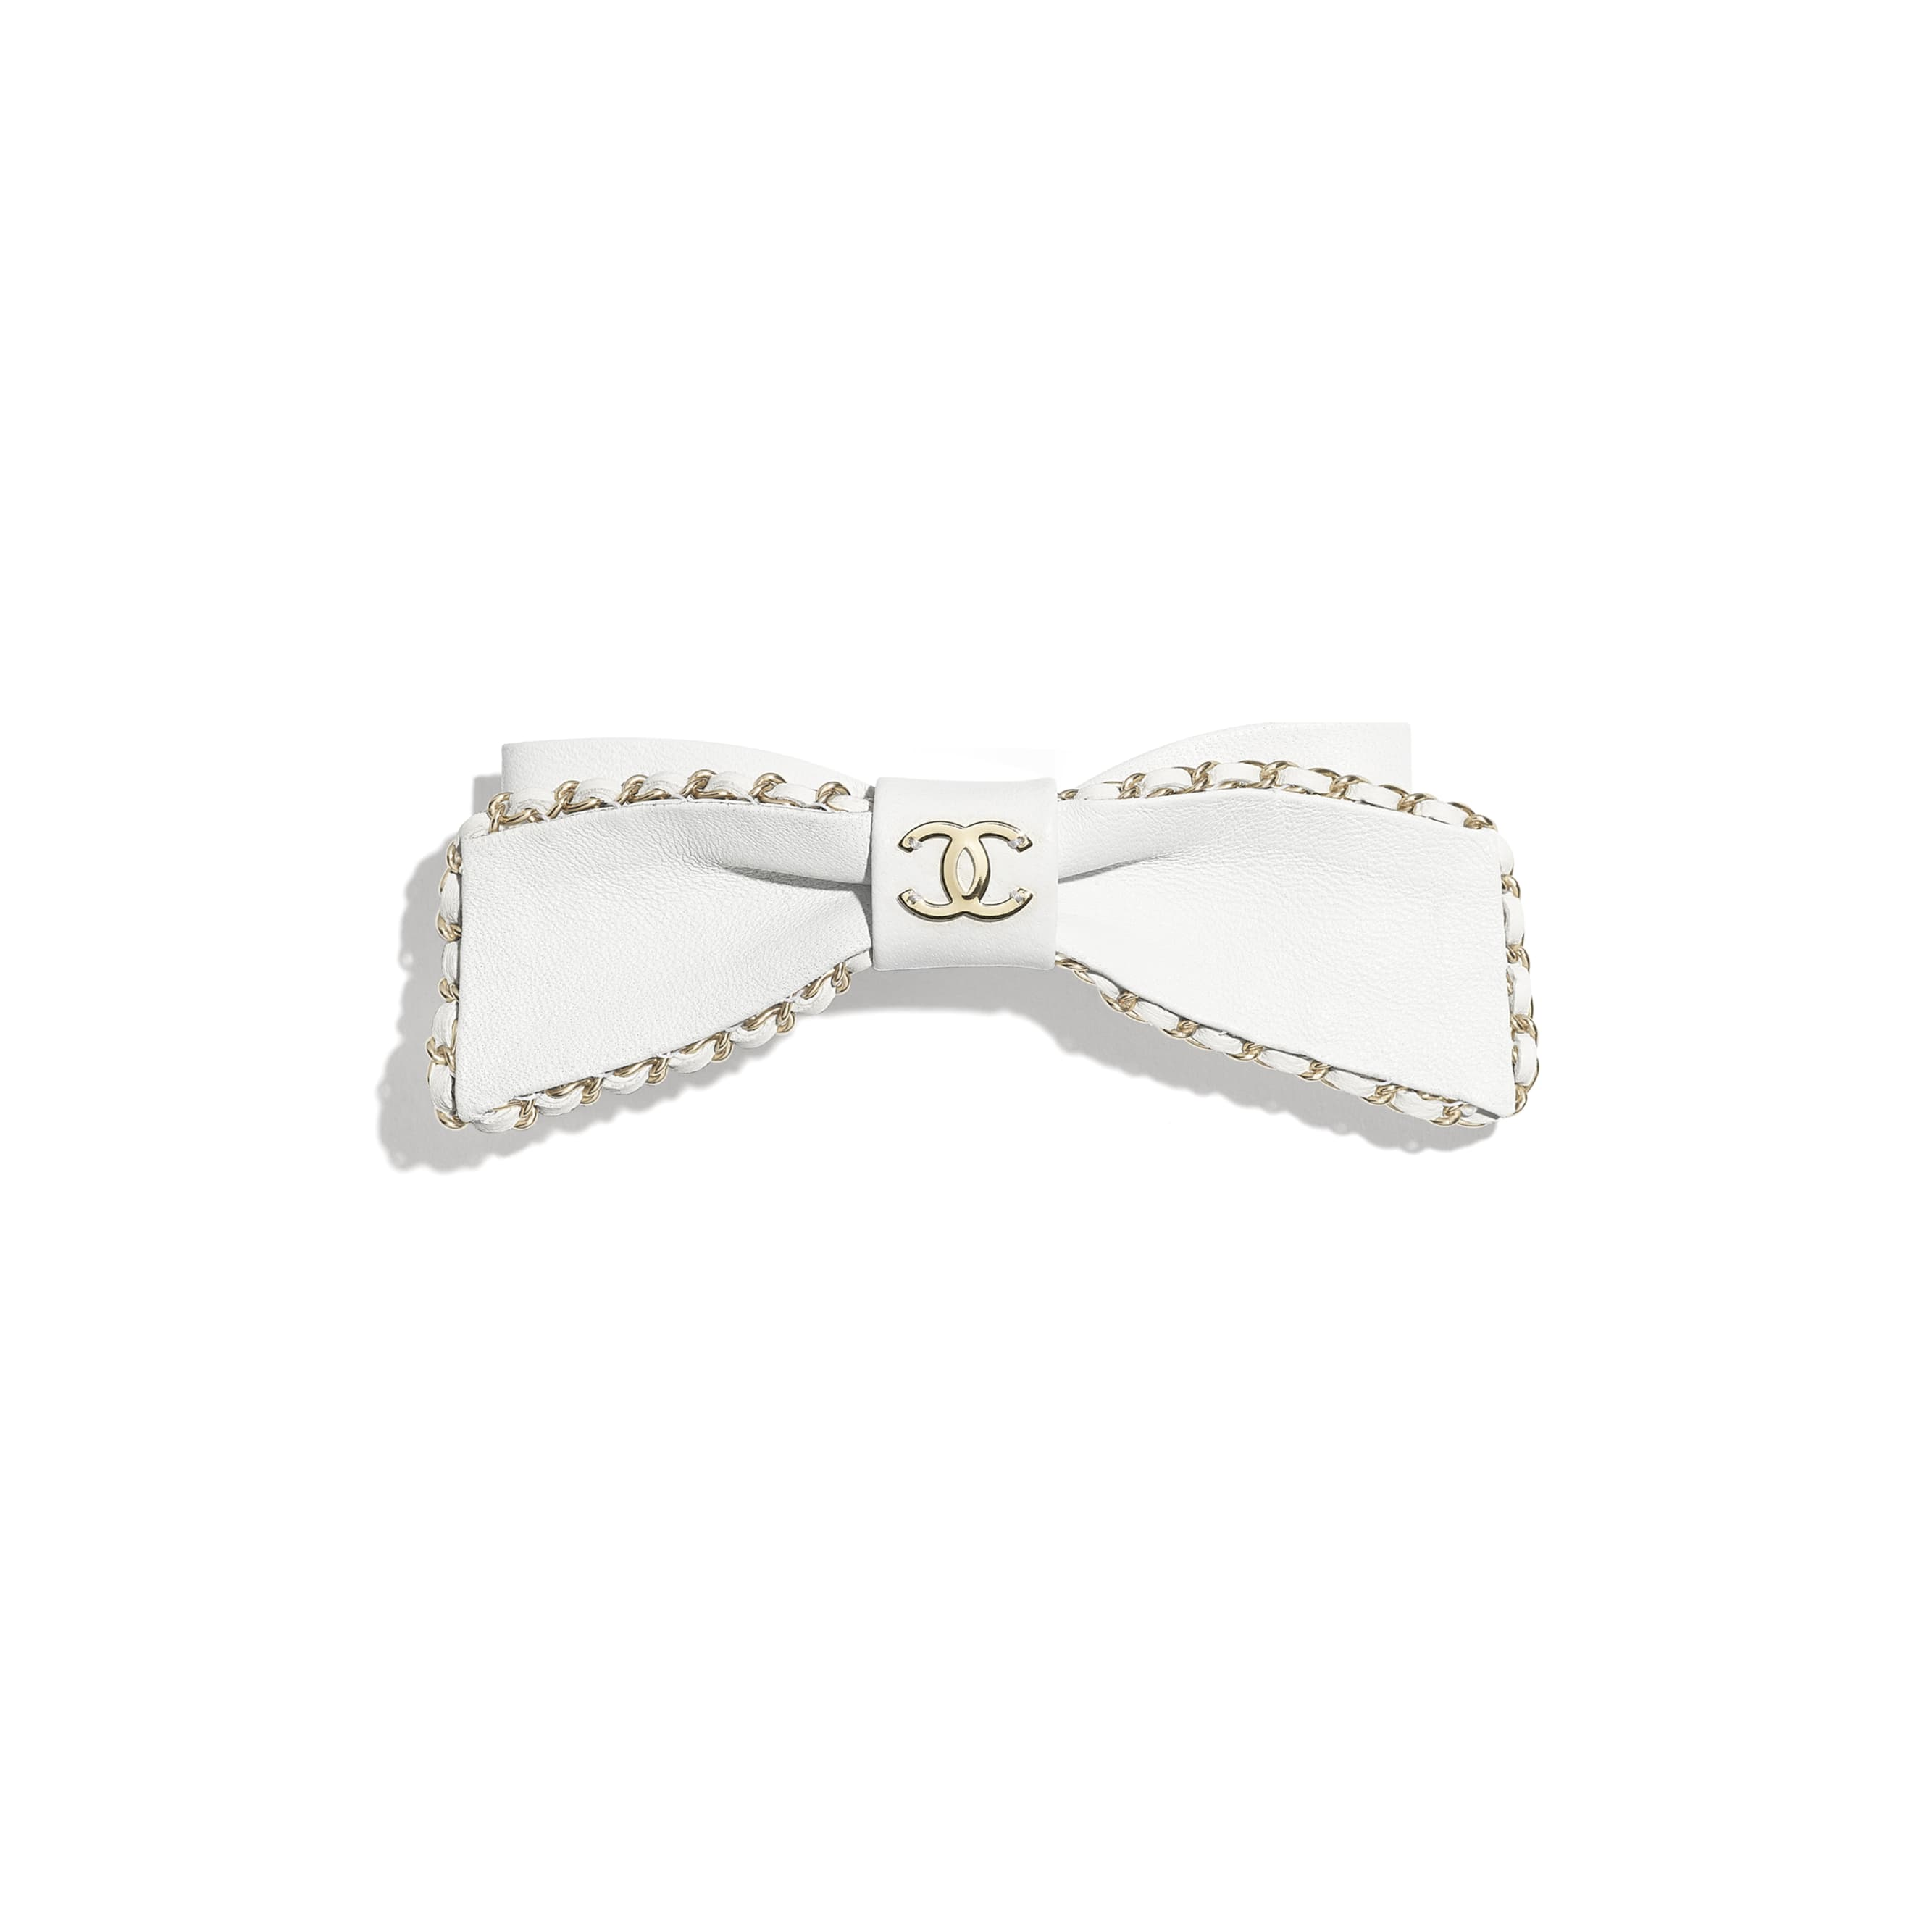 Hair Clip - White - Lambskin & Gold Metal  - CHANEL - Default view - see standard sized version